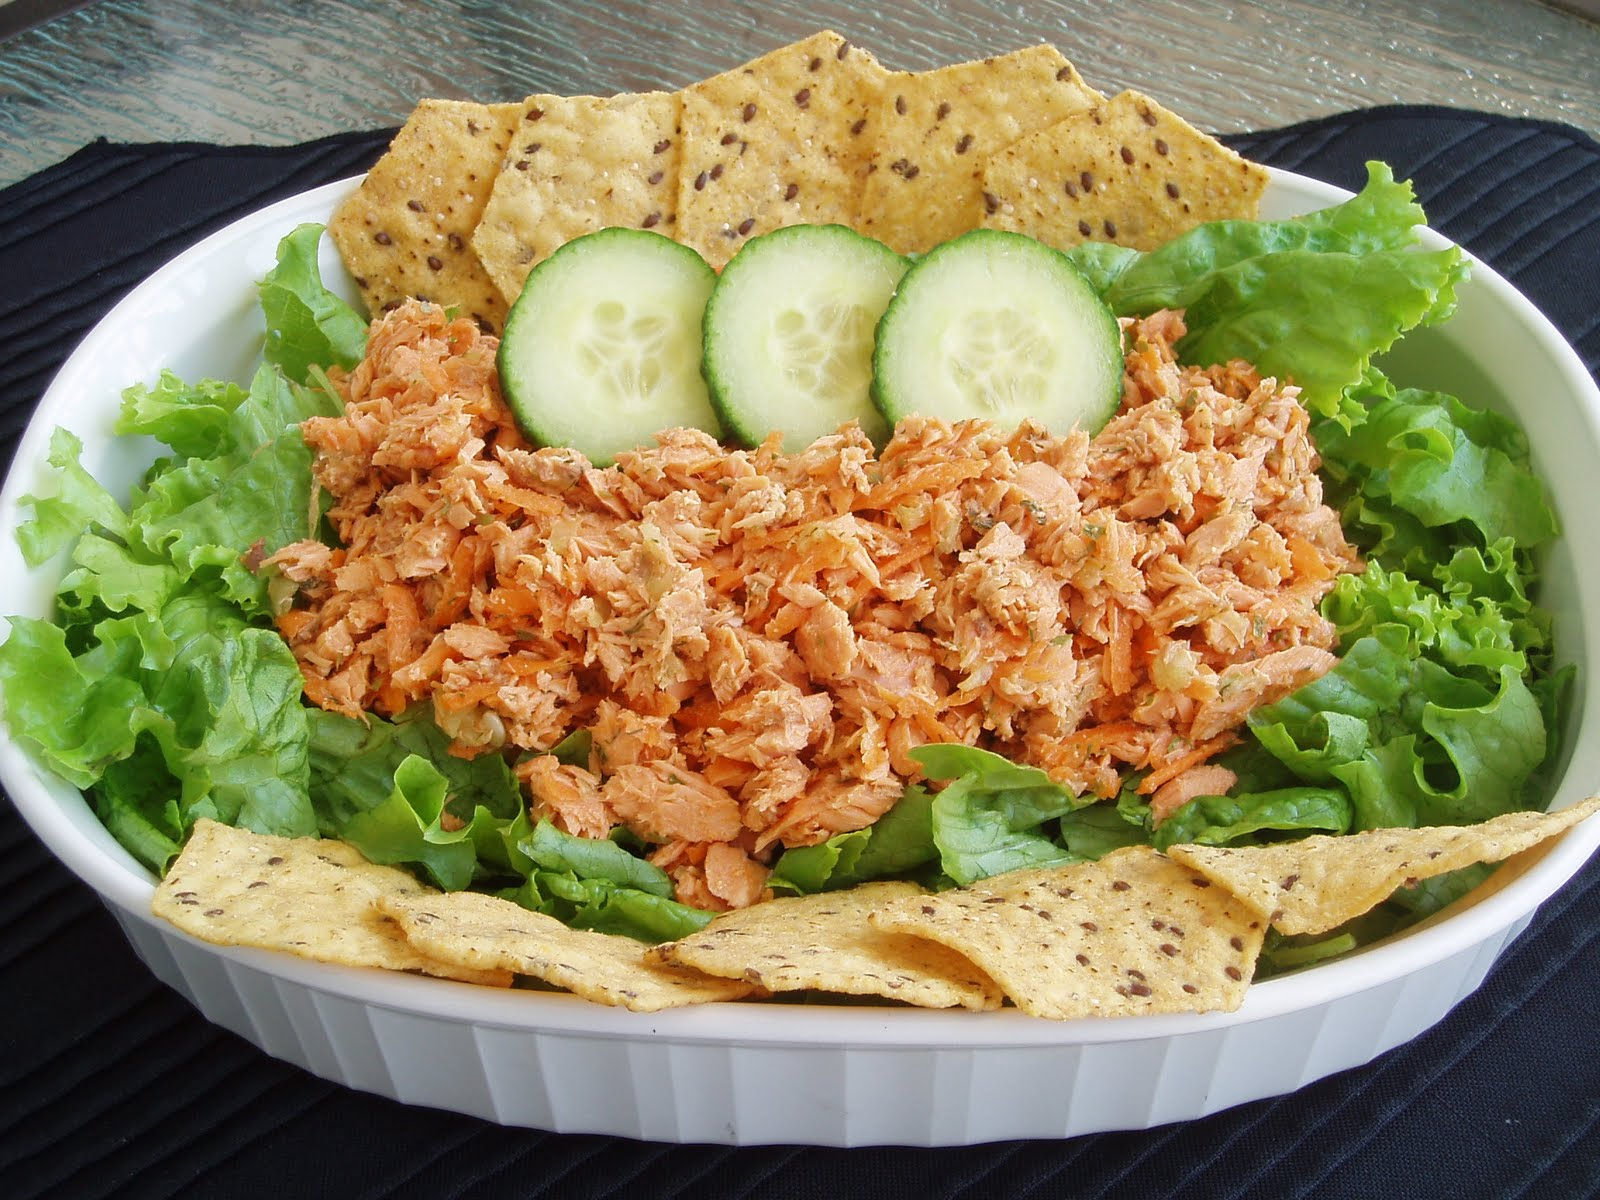 Salmon Salad - No Mayo - My First Blogaversary Gift To You